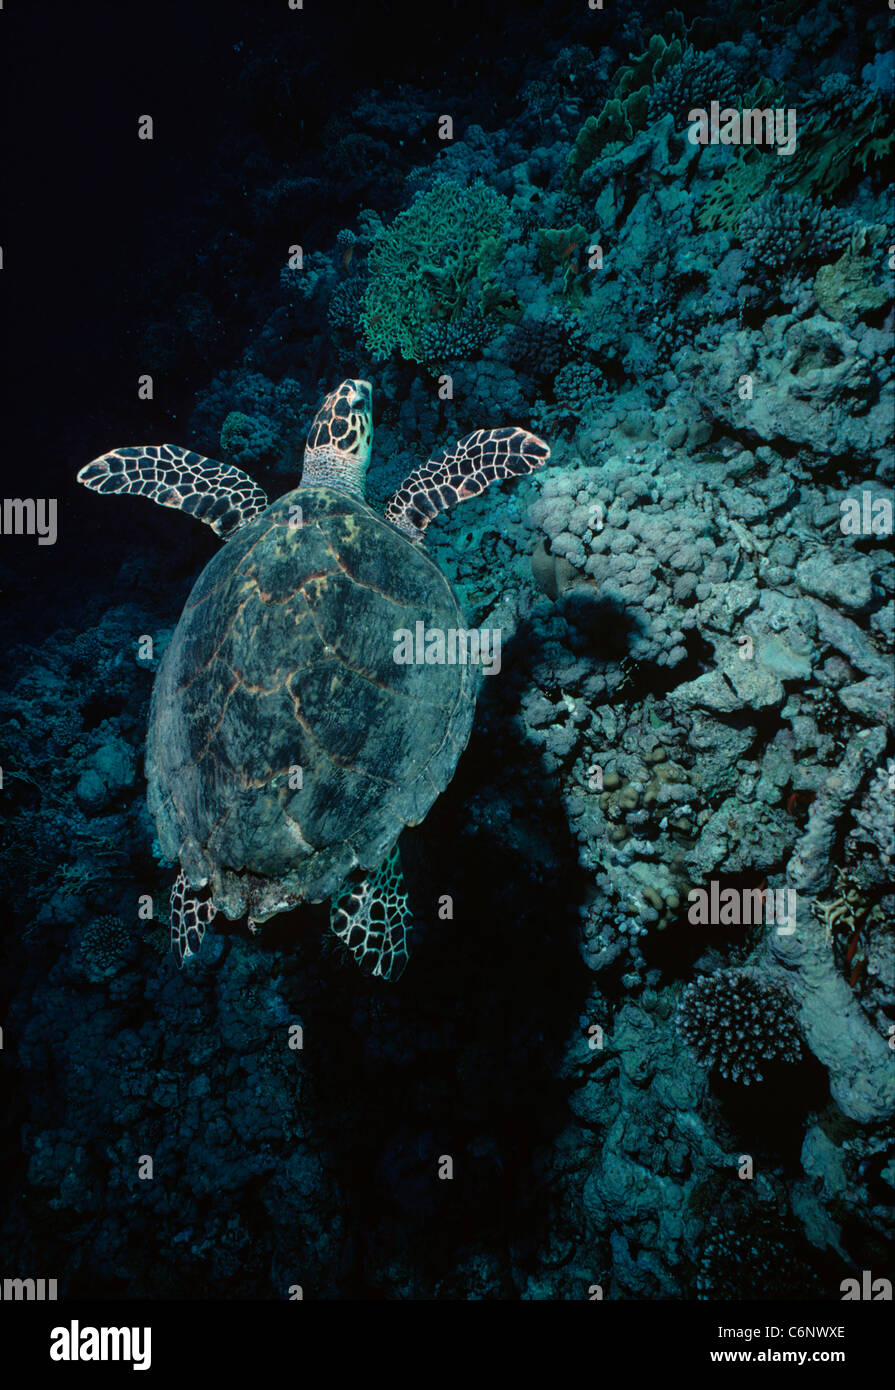 Hawksbill Turtle (Eretmochelys imbricata) swimming near a coral reef at night. Egypt, Red Sea - Stock Image